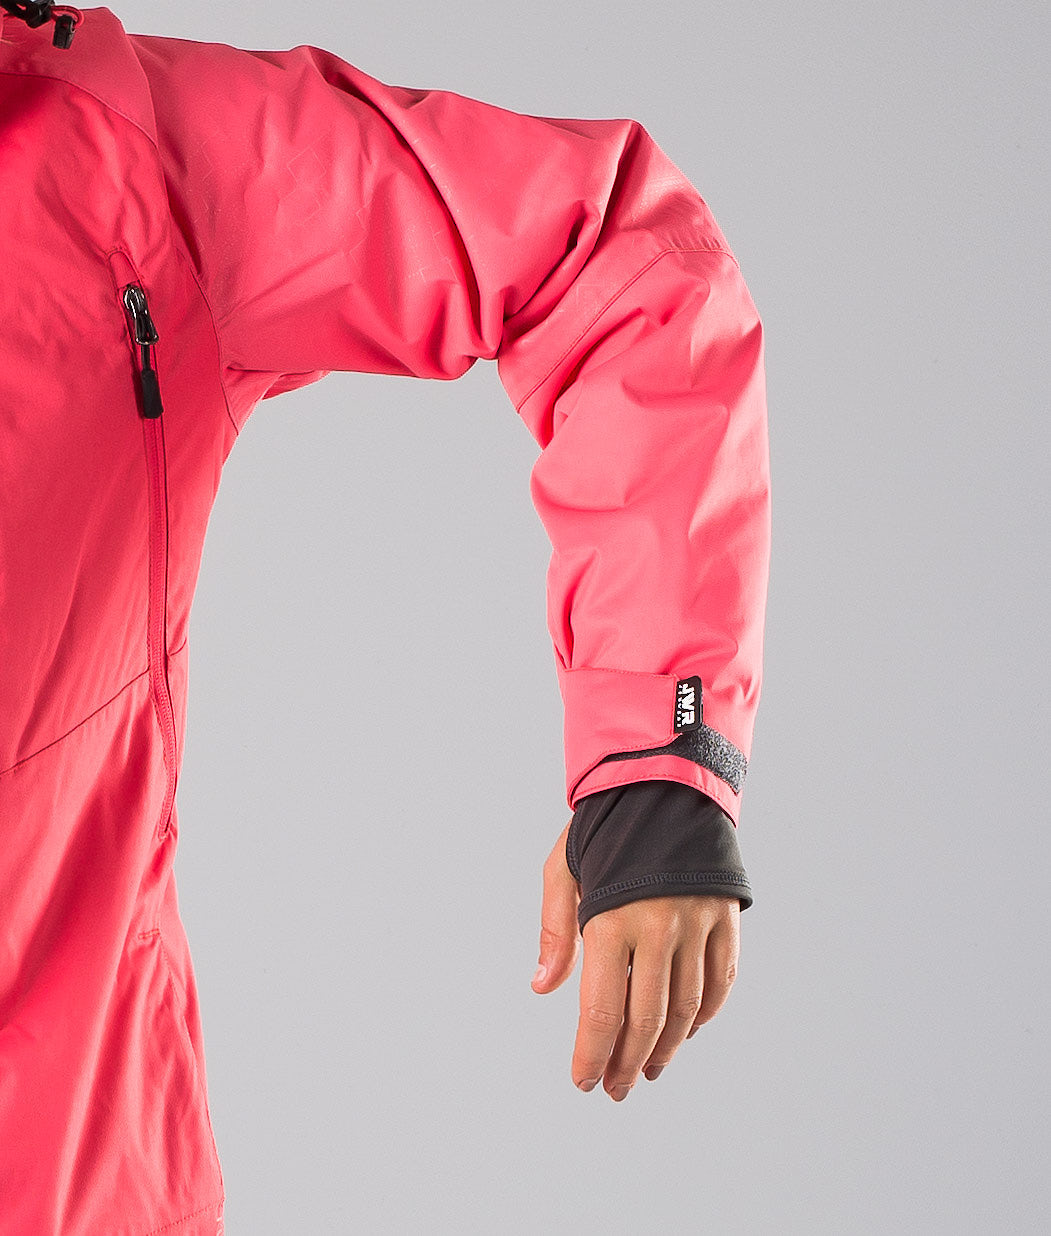 Buy Jorm Jacket  Snowmobile Jacket from Jethwear at Ridestore.com - Always free shipping, free returns and 30 days money back guarantee